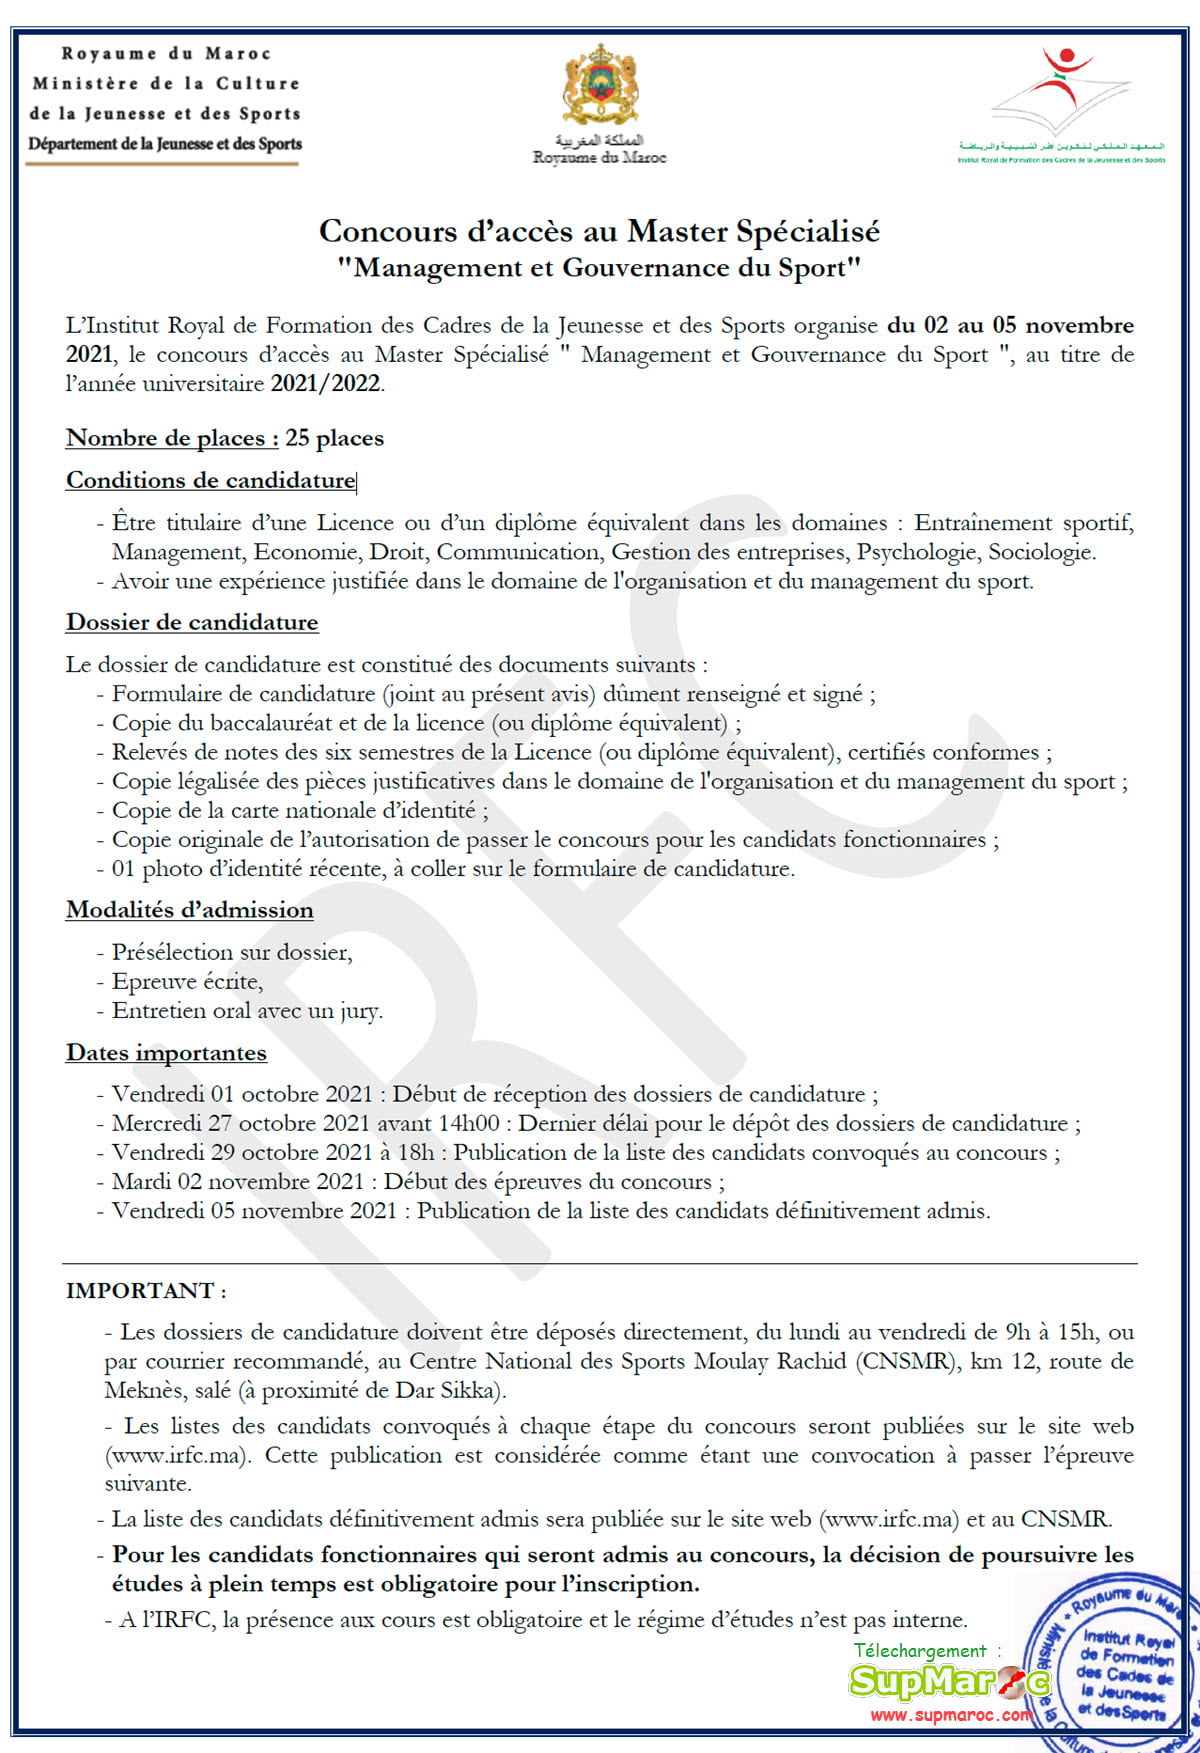 Concours Master IRFC Institut Royal Formation Cadres 2021 2022